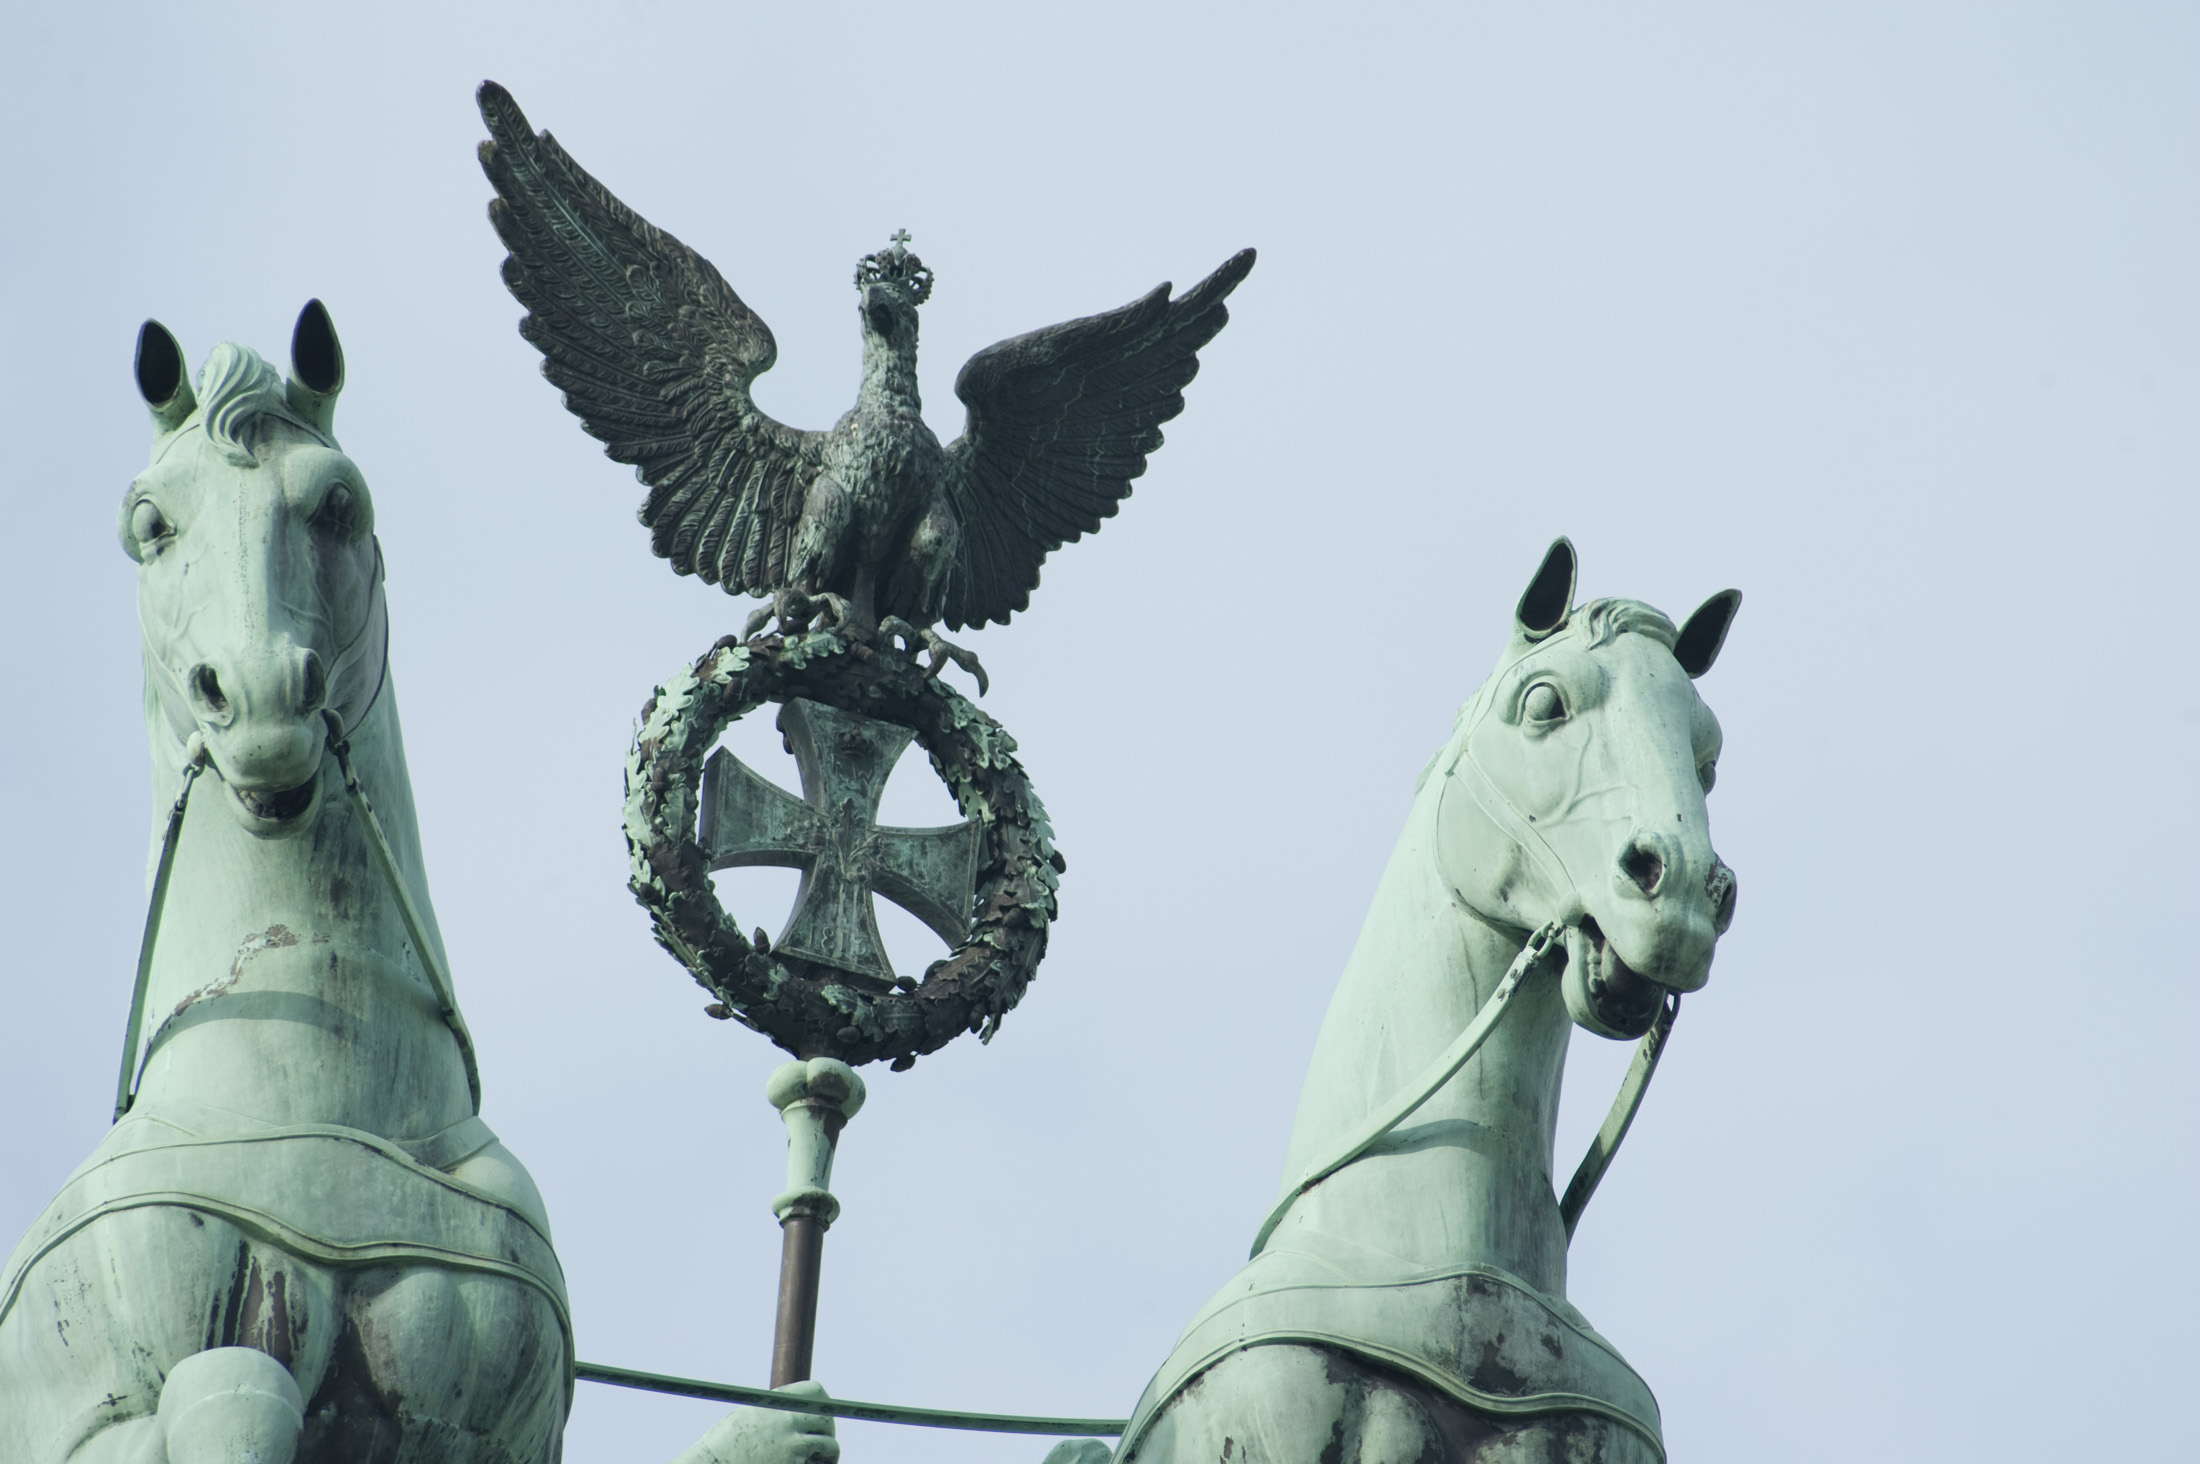 close up on the staff held by Victoria, roman goddess of vistory, on top of the brandenburg gate, berlin, germany